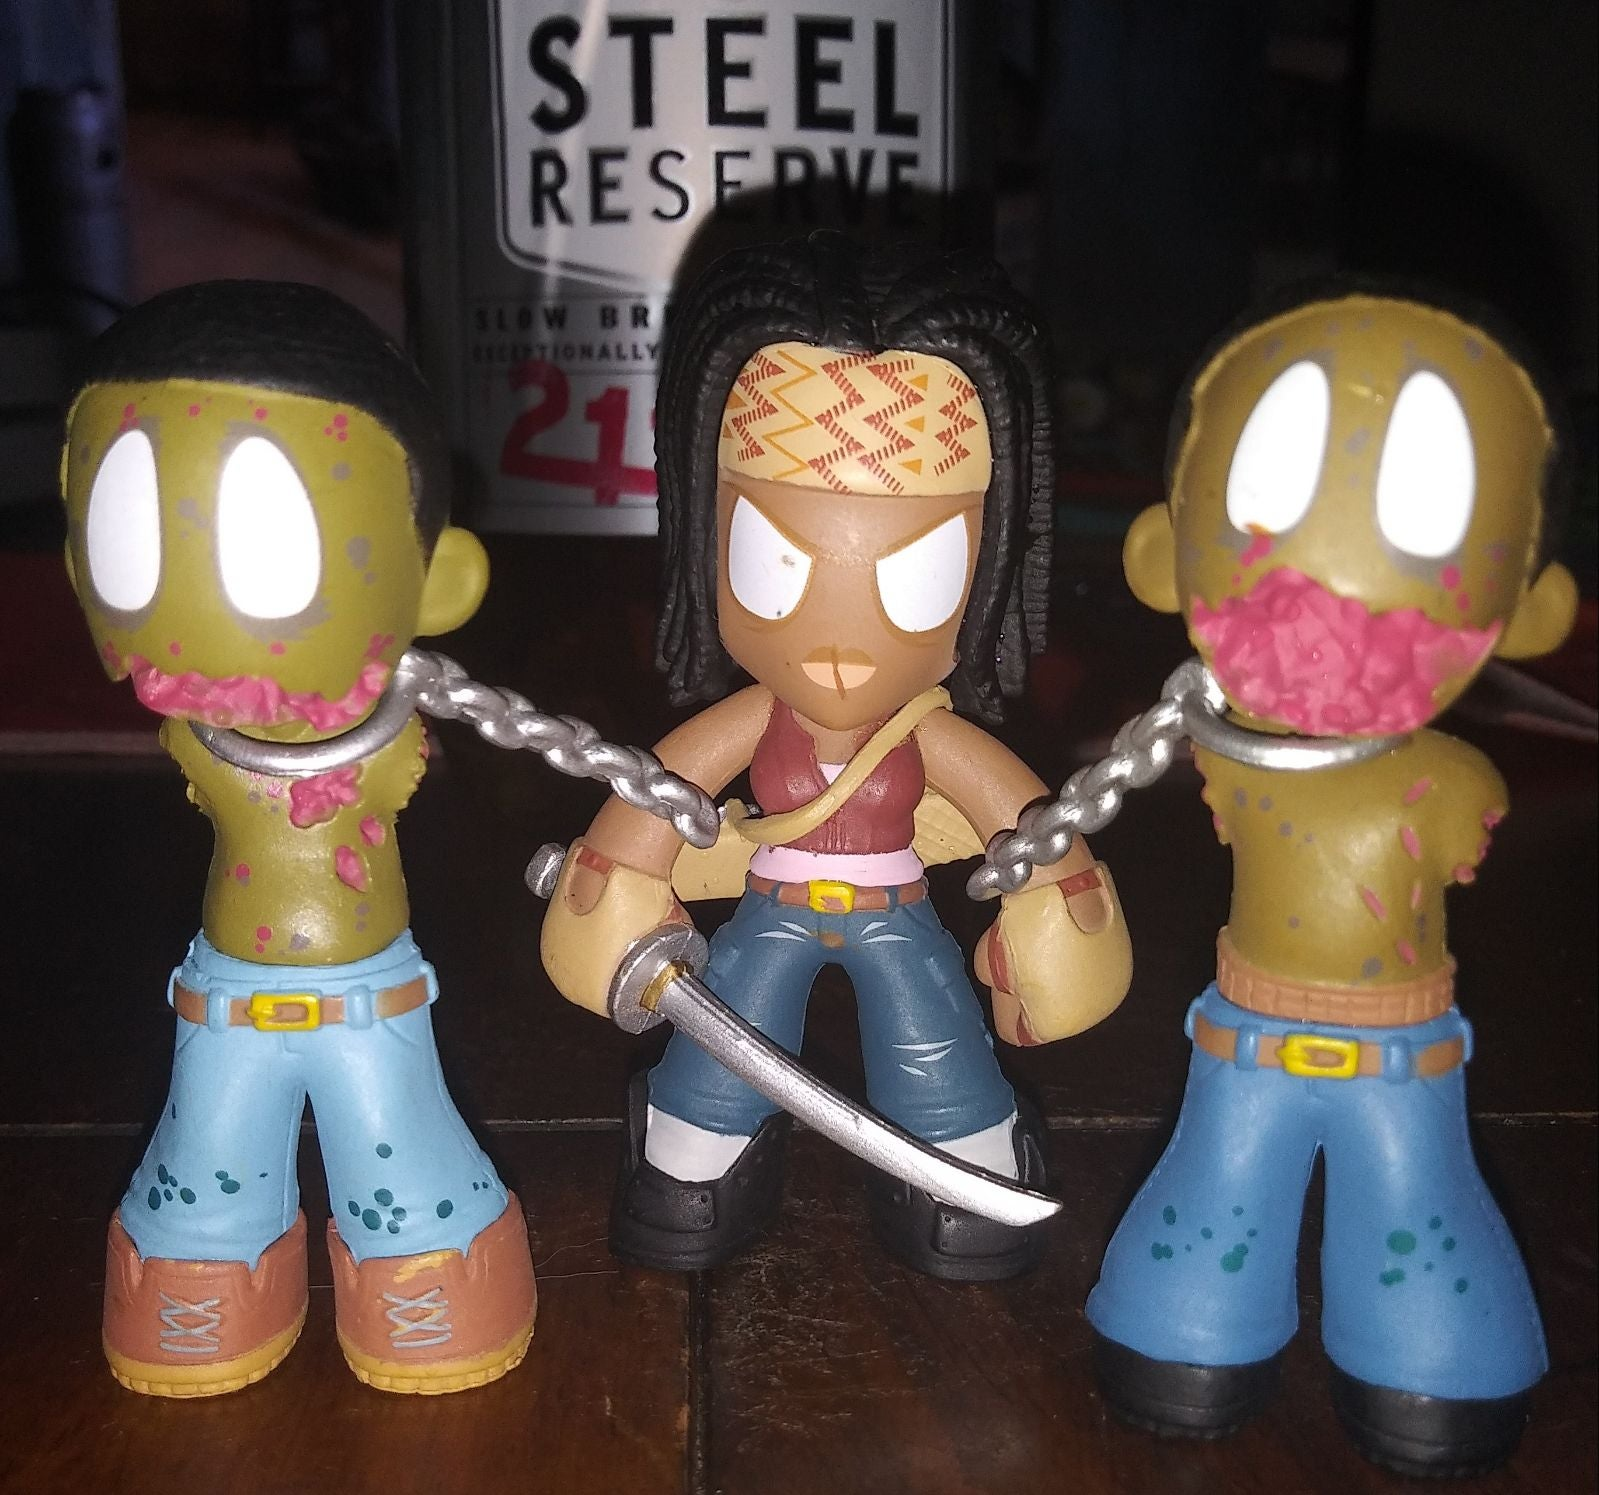 TWD Michonne & Her 2 Walkers on chains